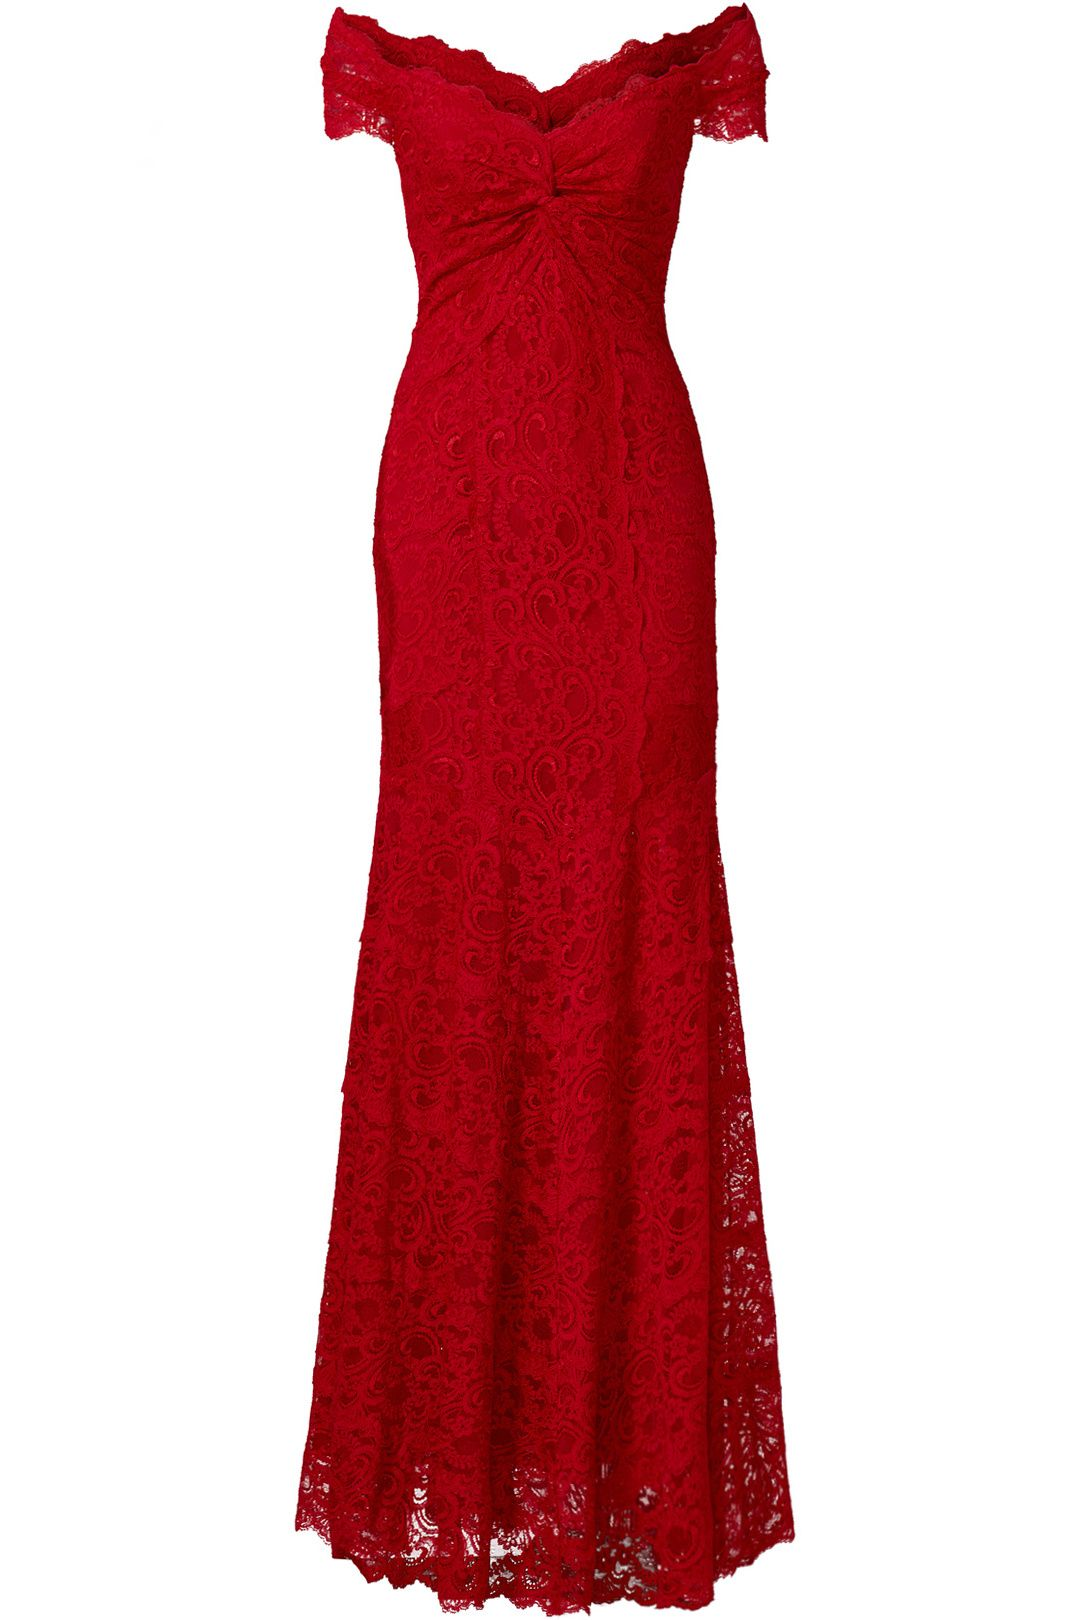 Nicole Miller Red Tempted By You Gown Red bridesmaid